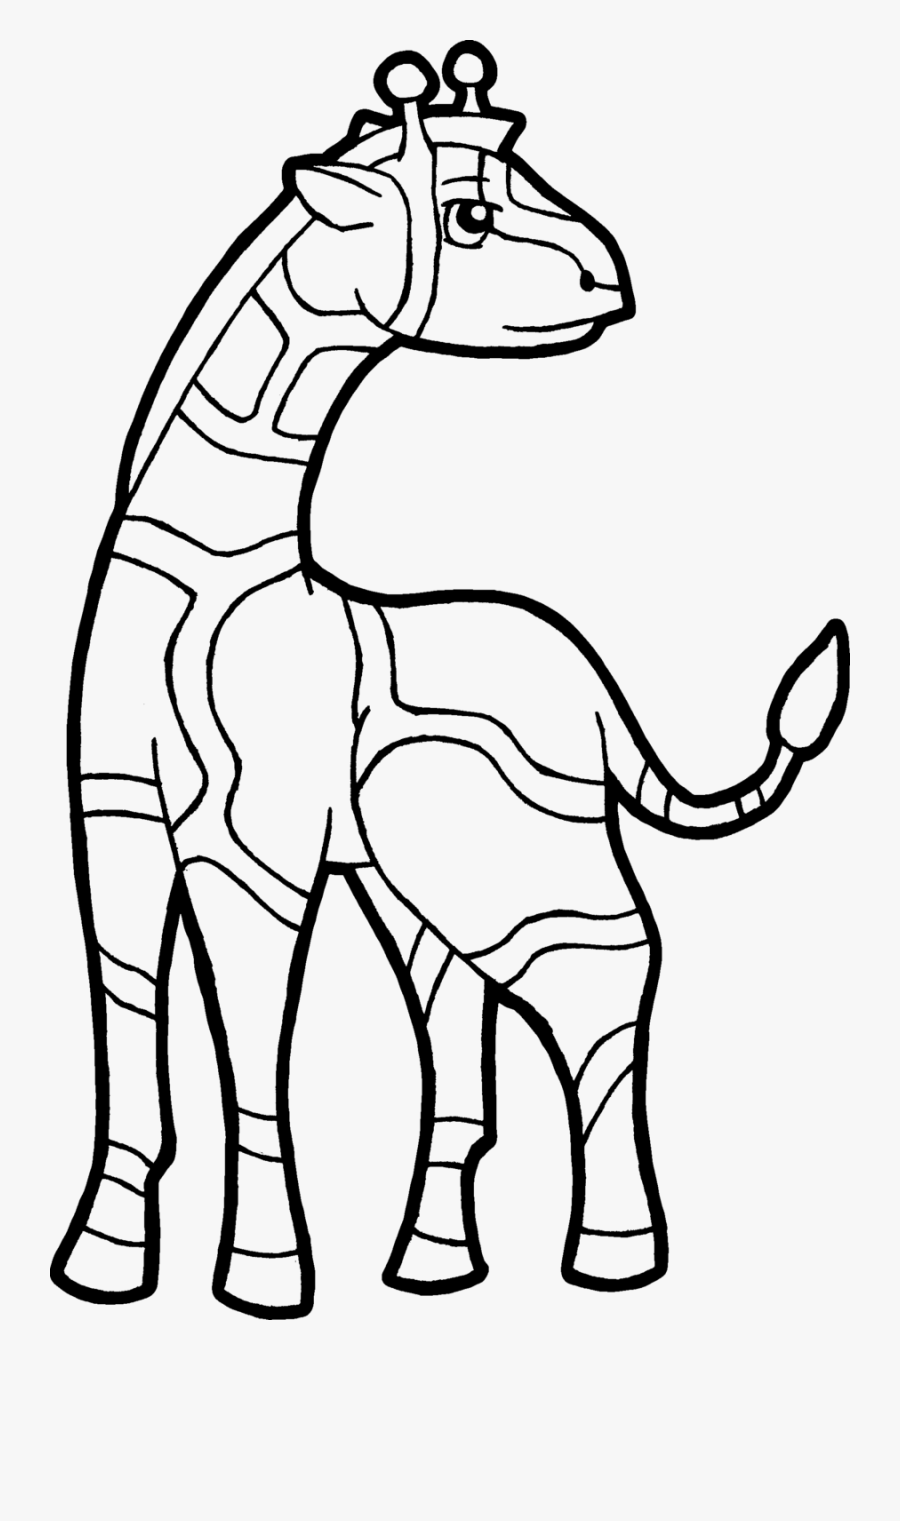 Giraffe - Coloring - Pages - Giraffe For Coloring Png, Transparent Clipart